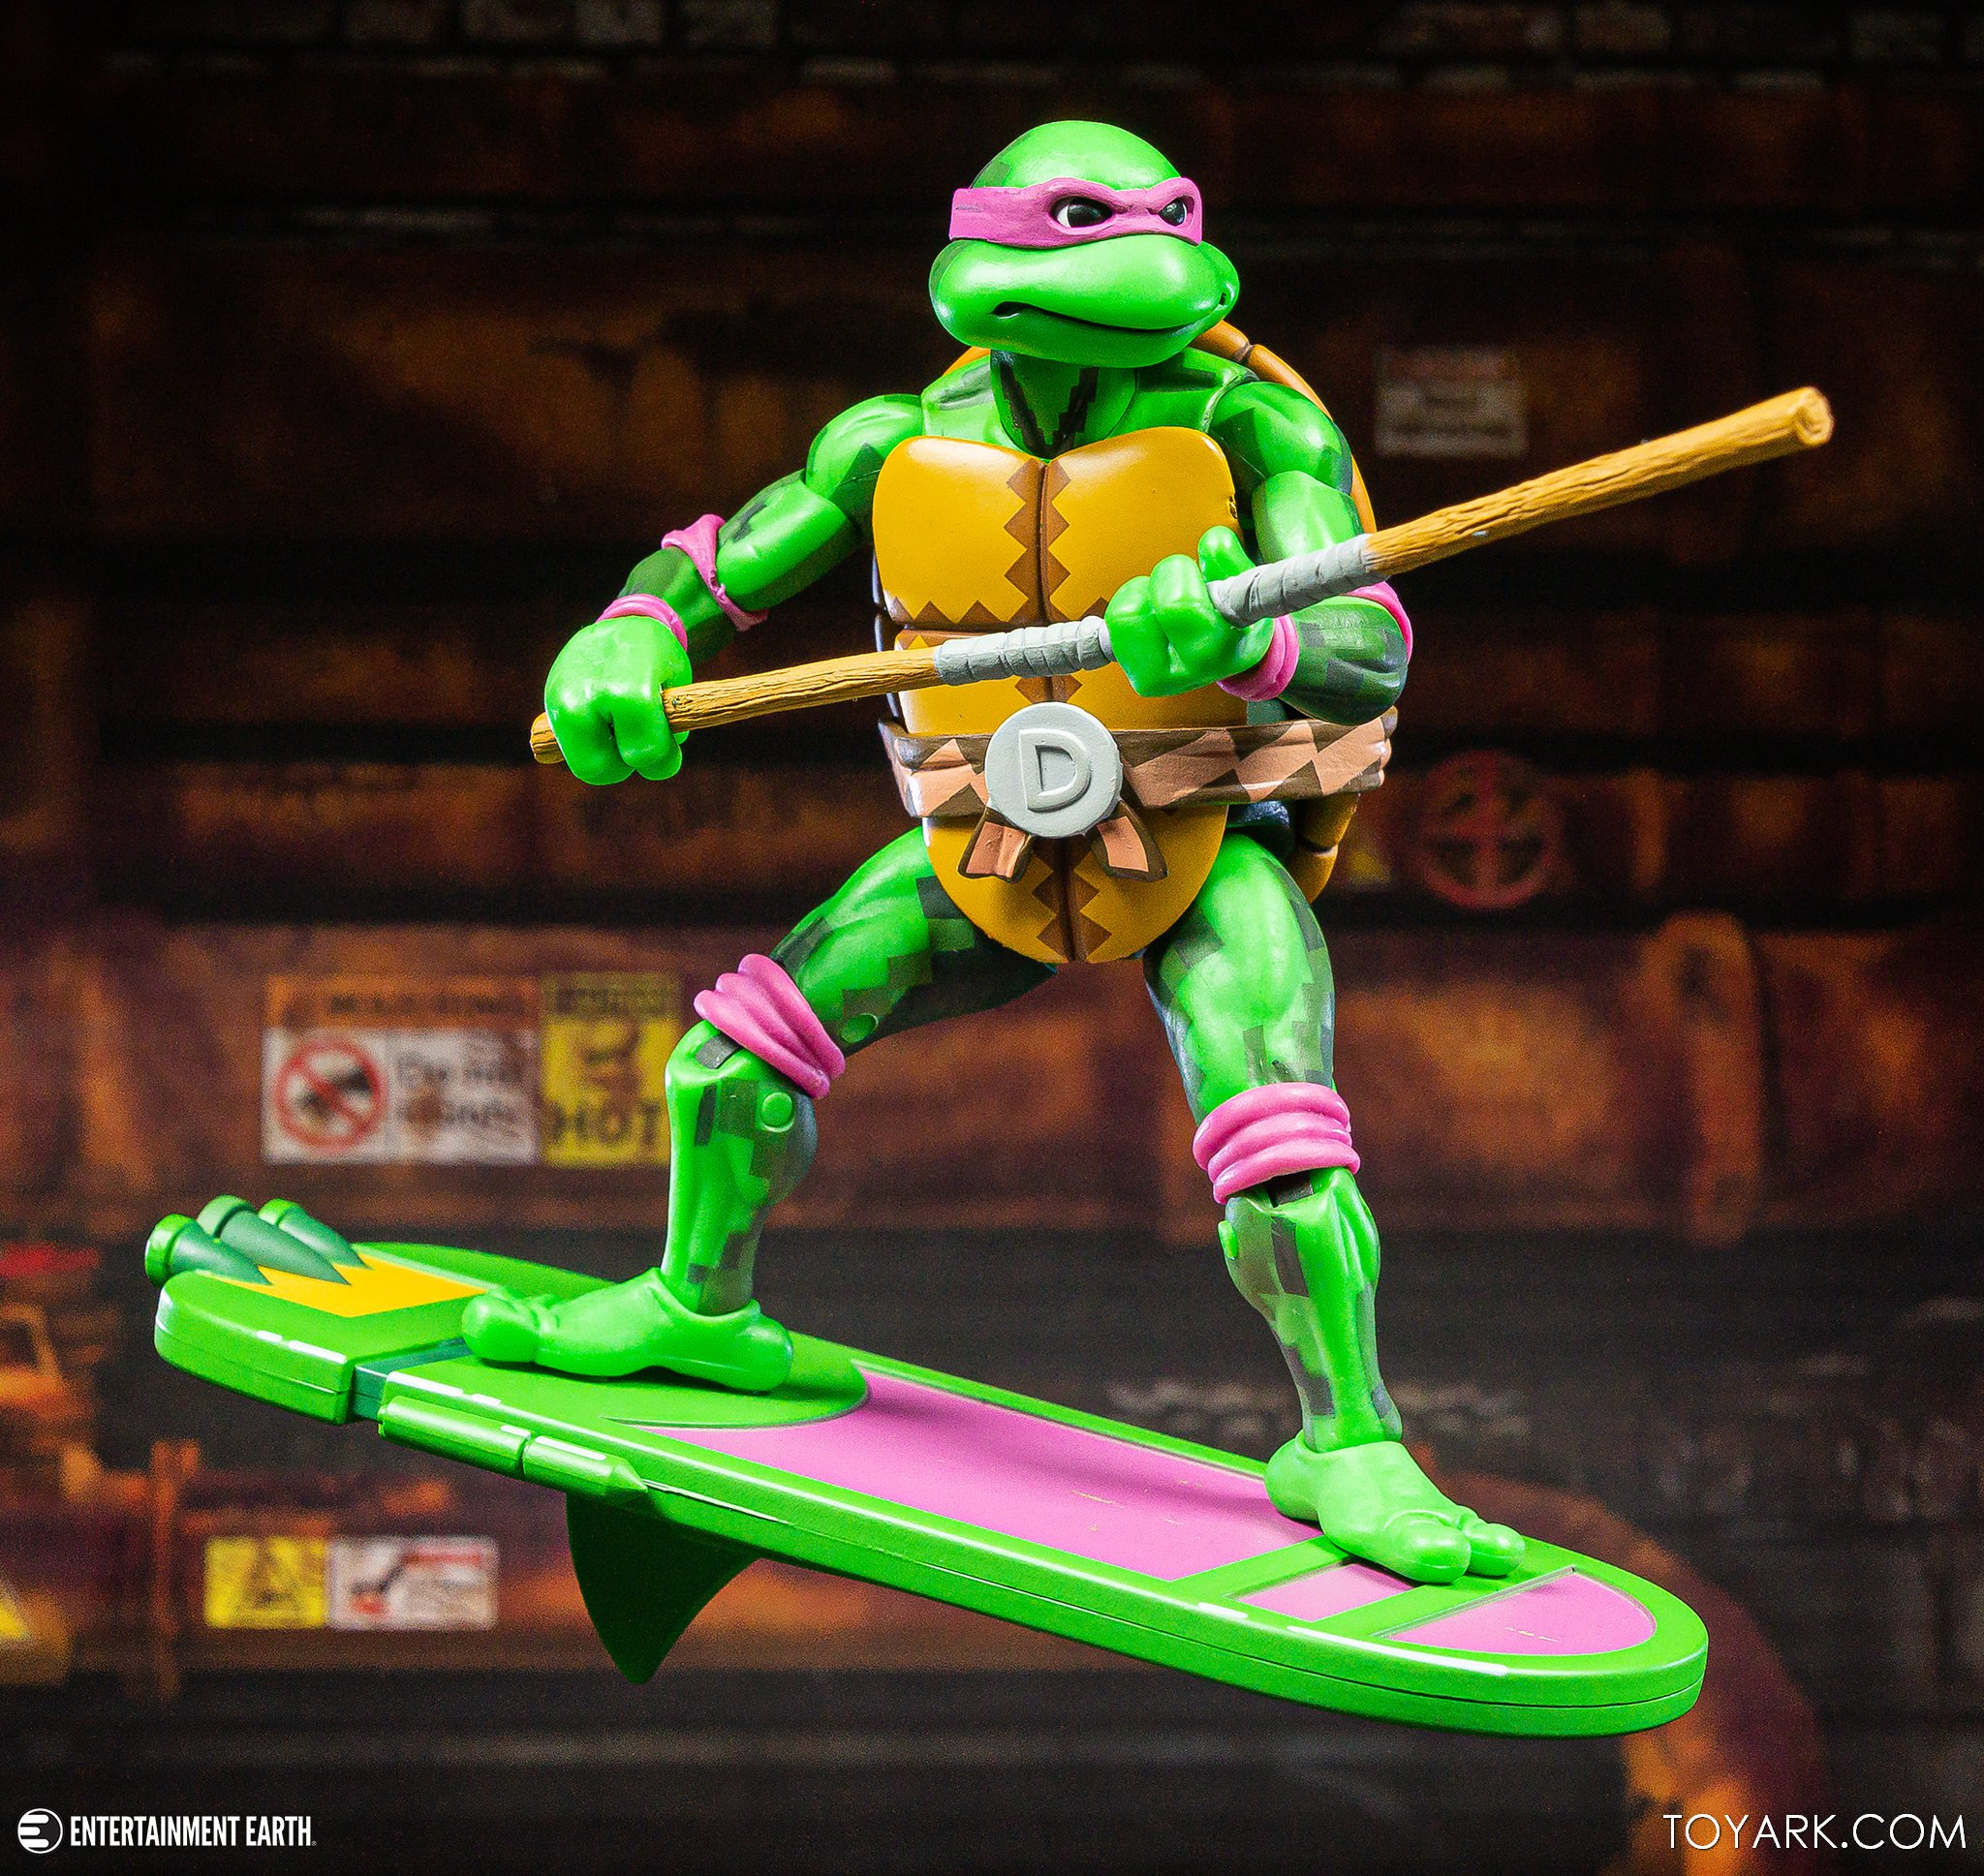 https://news.toyark.com/wp-content/uploads/sites/4/2020/06/NECA-TMNT-Turtles-In-Time-S1-071.jpg